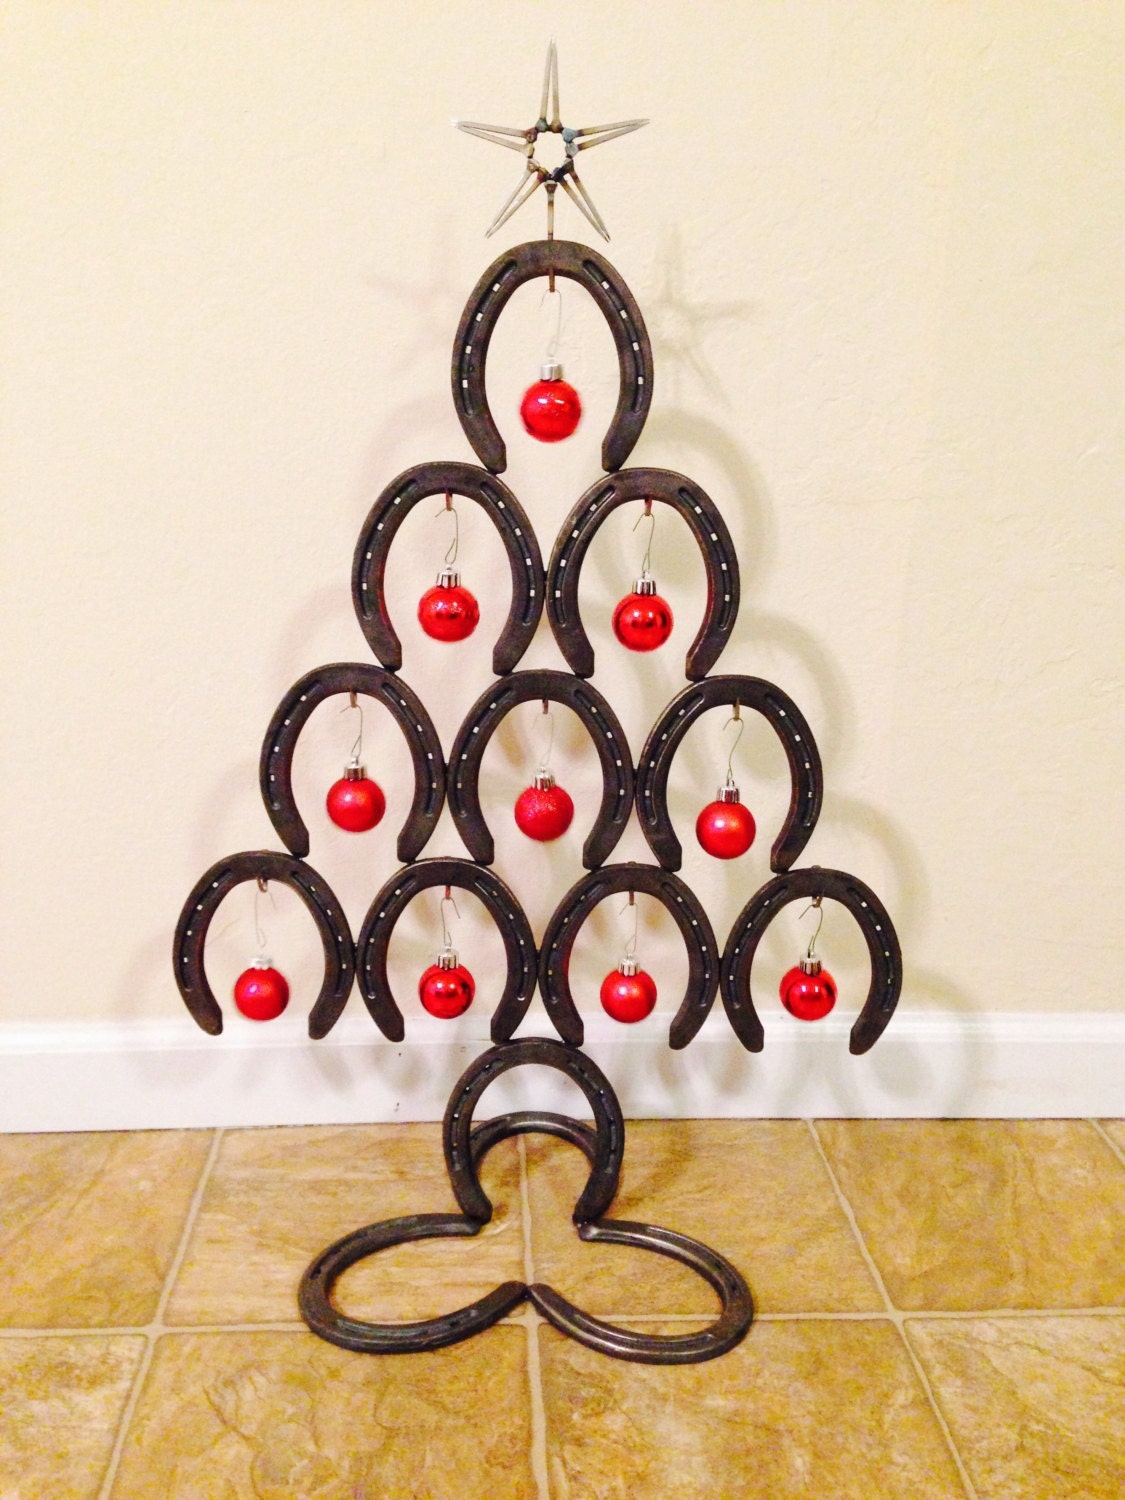 Chandeliers pendant lights for Christmas tree made out of horseshoes